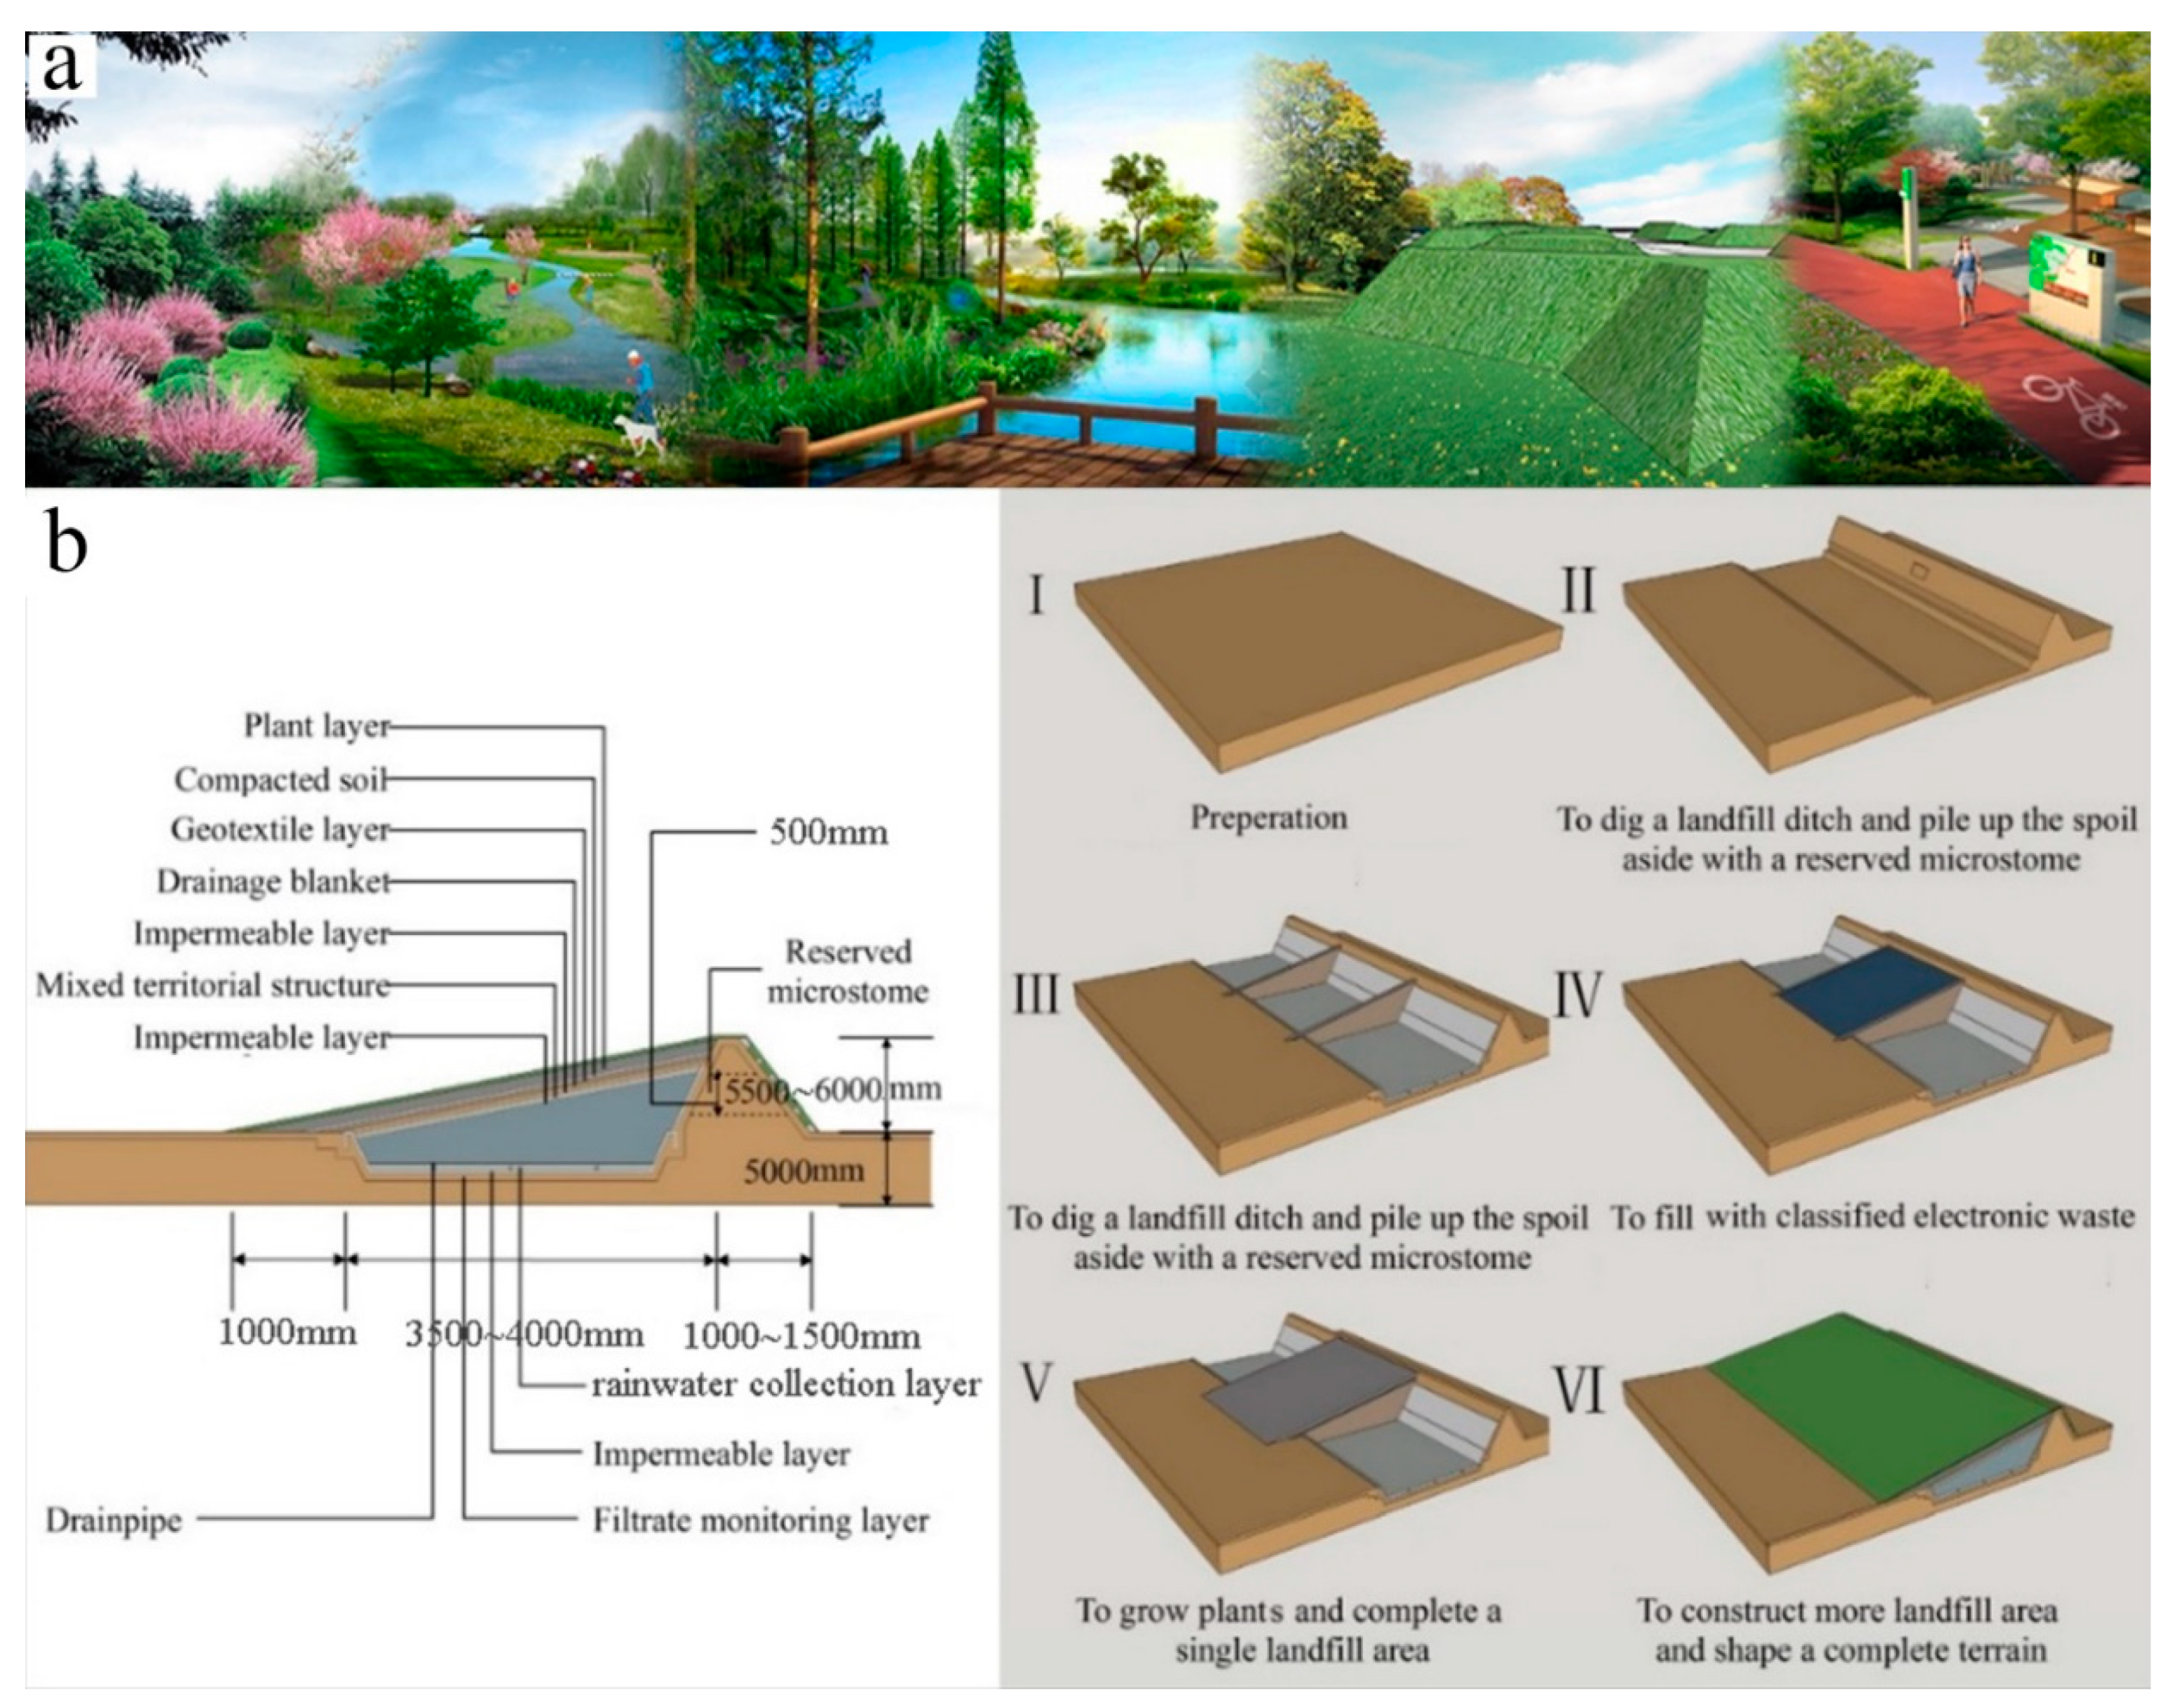 Sustainability Free Full Text Storing E Waste In Green Infrastructure To Reduce Perceived Value Loss Through Landfill Siting And Landscaping A Case Study In Nanjing China Html